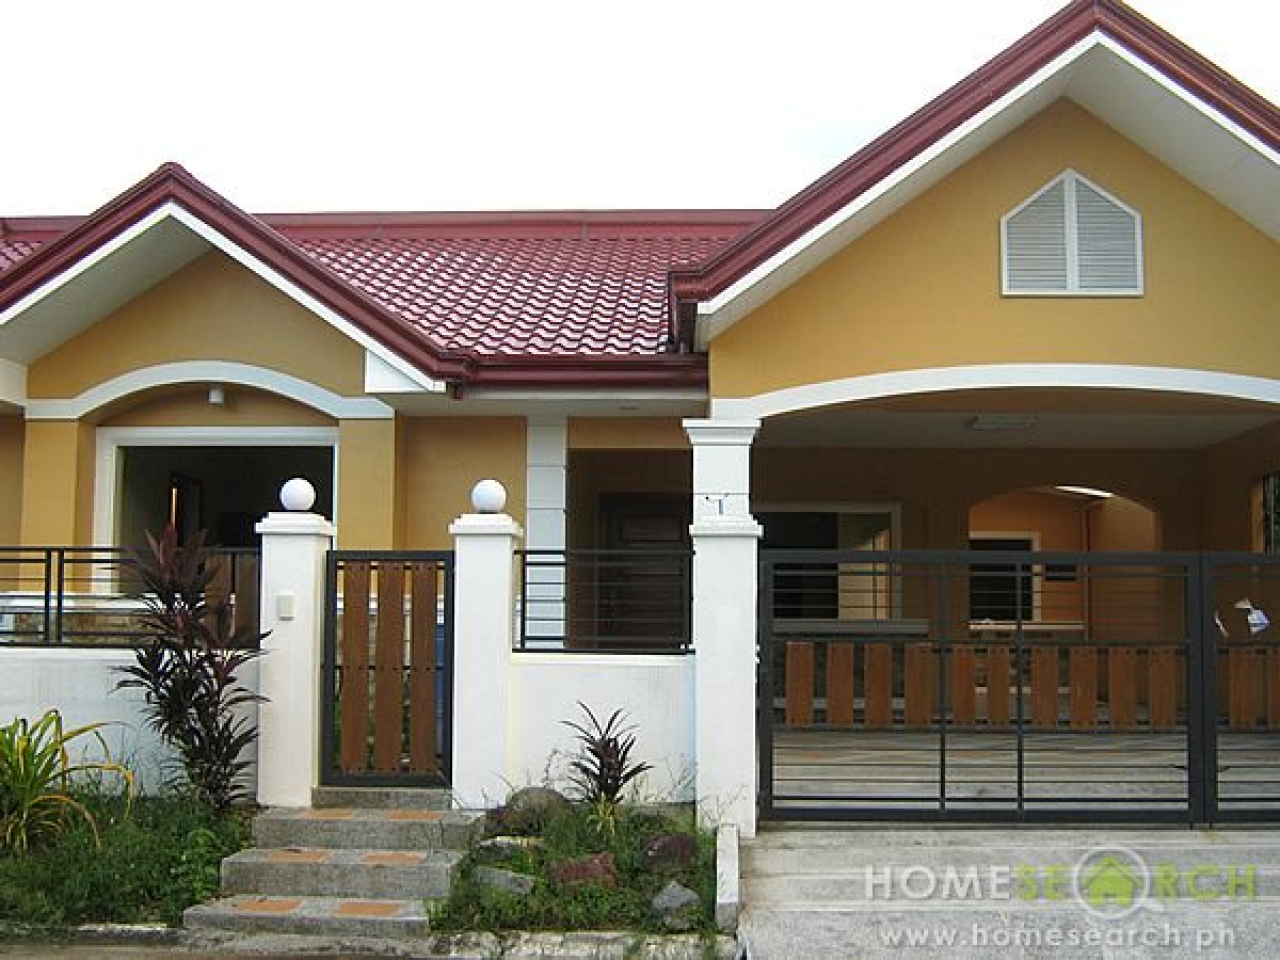 Bungalow style house design philippines prairie style for Philippine bungalow house design pictures